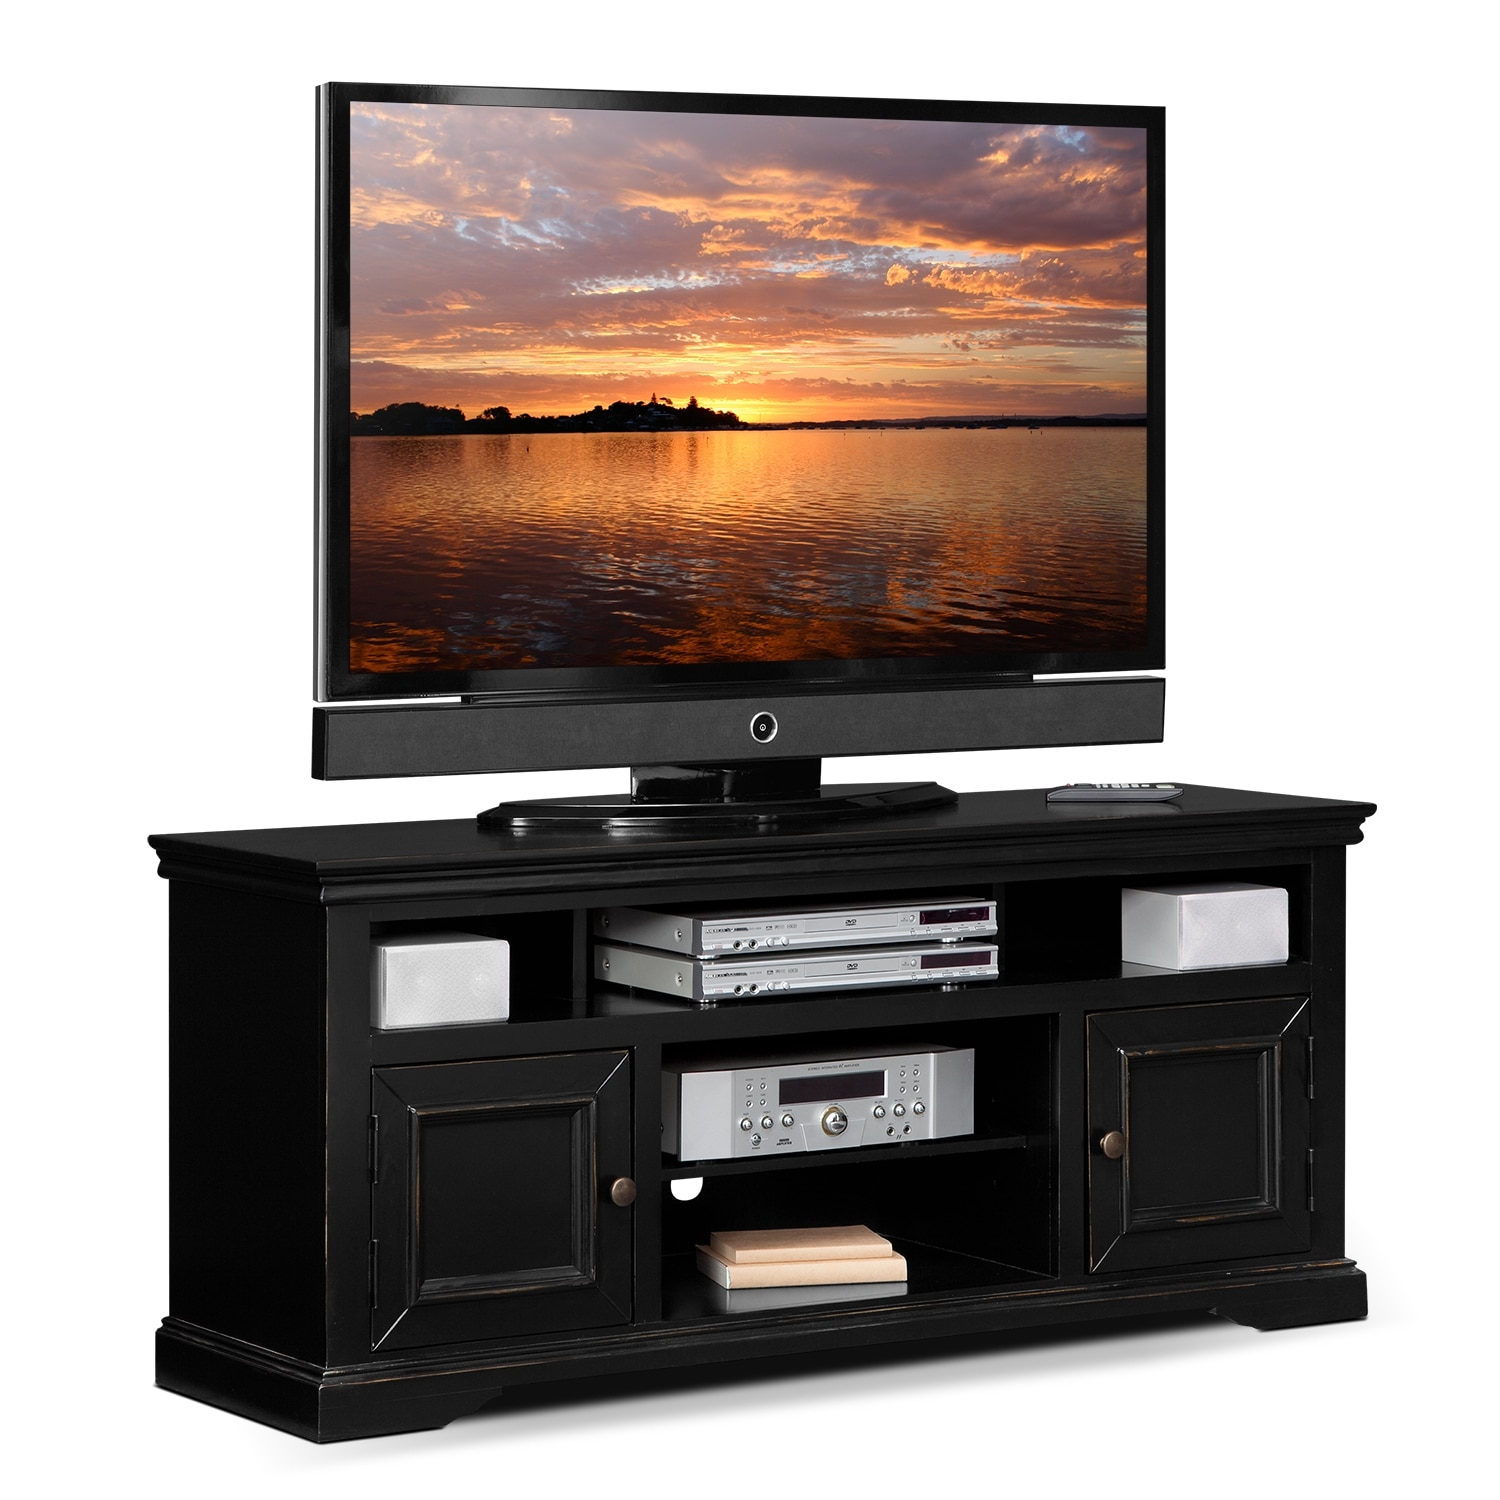 Tv Stereo Stands Cabinets Tv Stands Media Centers Value City Value City Furniture